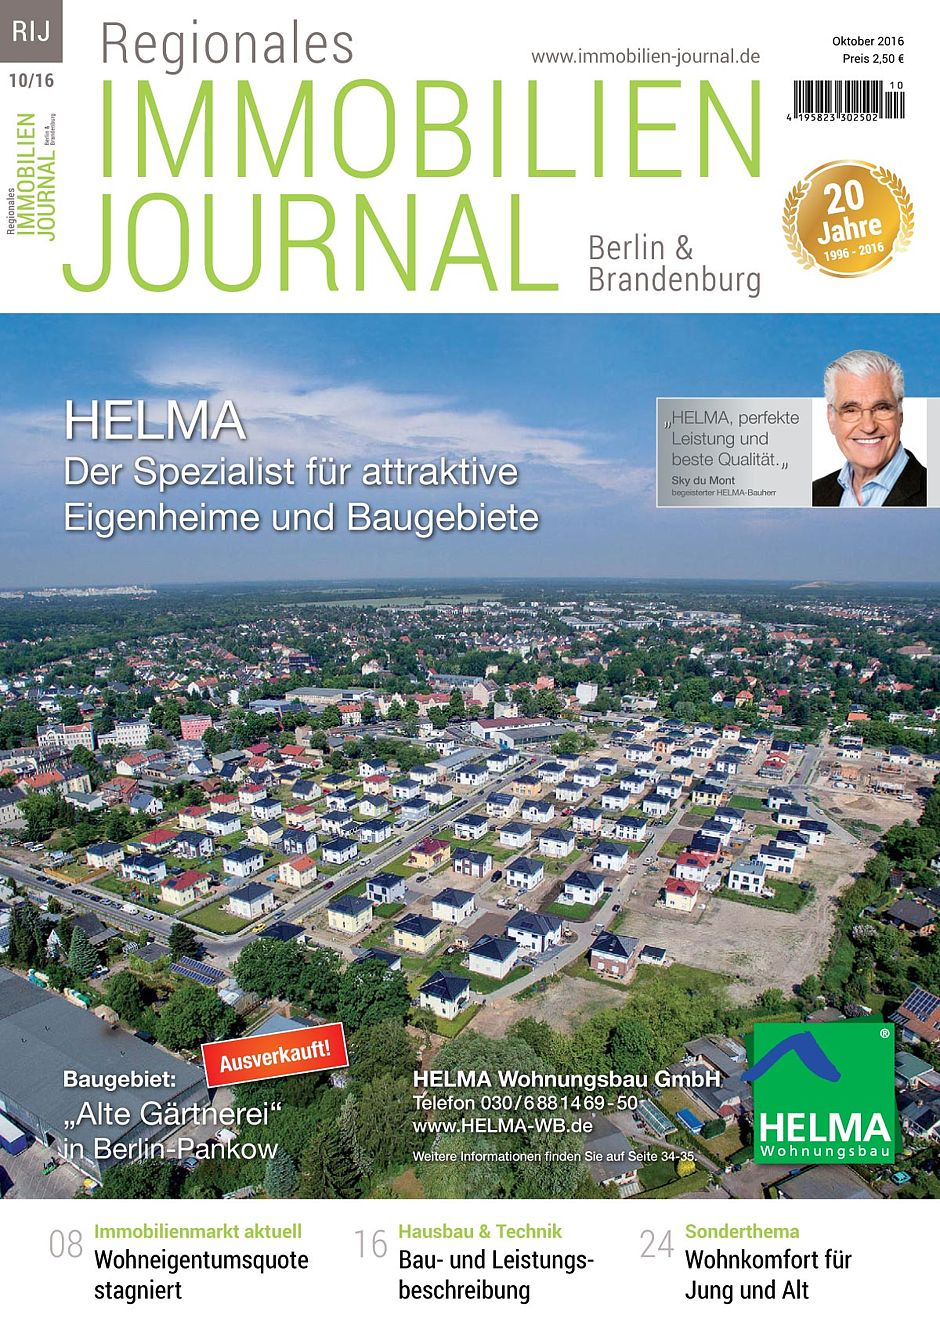 Regionales immobilien journal berlin brandenburg oktober for Hausbaufirmen brandenburg